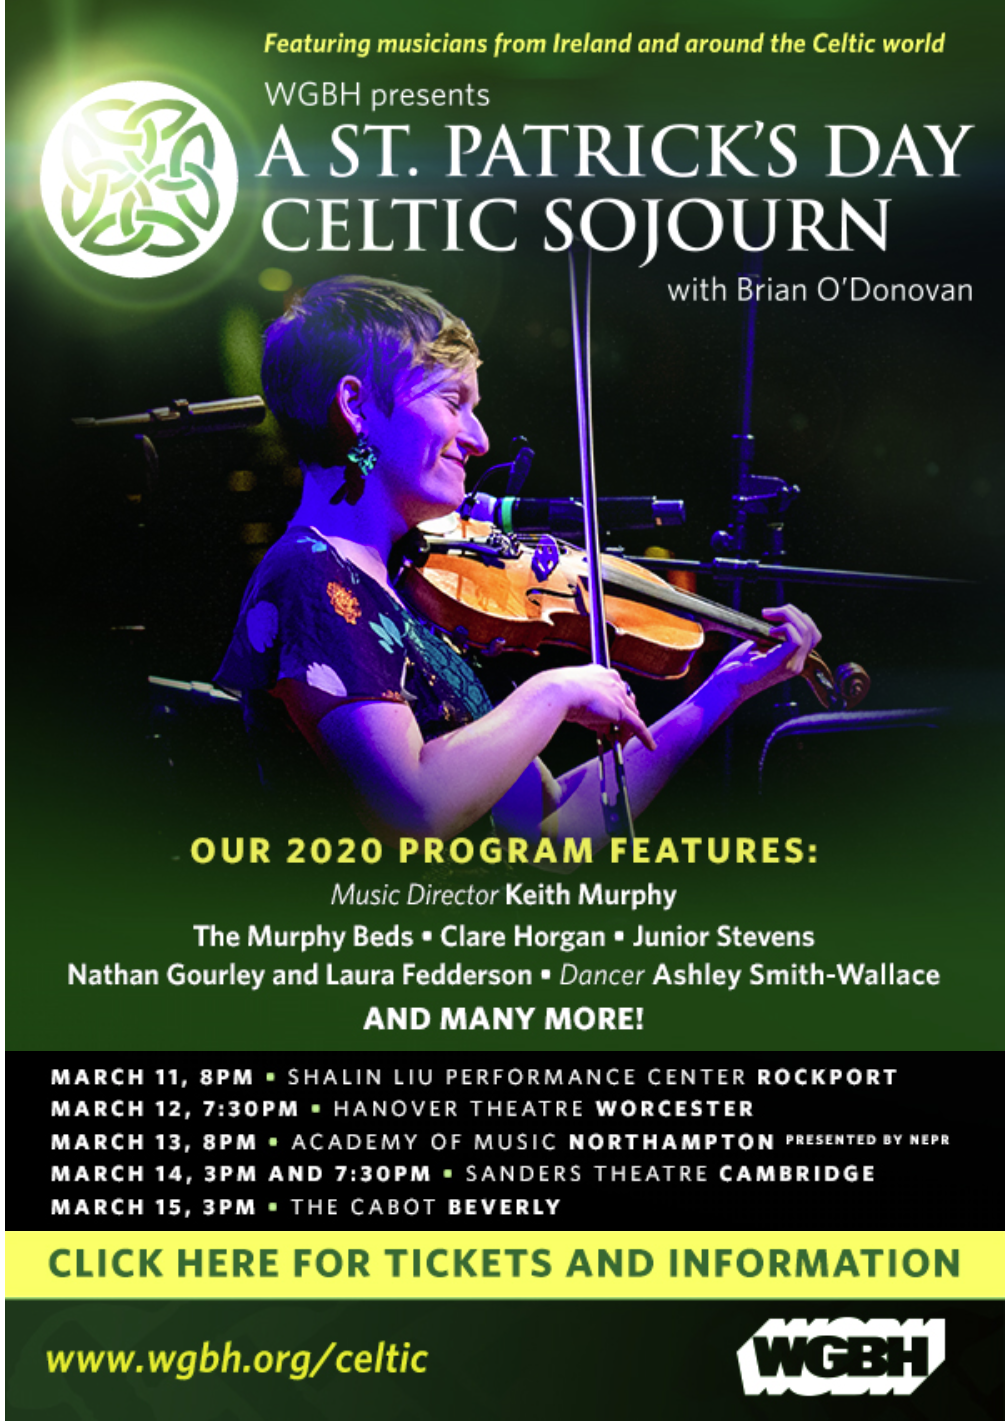 Christmas Celtic Sojourn 2020 A St. Patrick's Day Celtic Sojourn 2020 With Brian O'Donovan